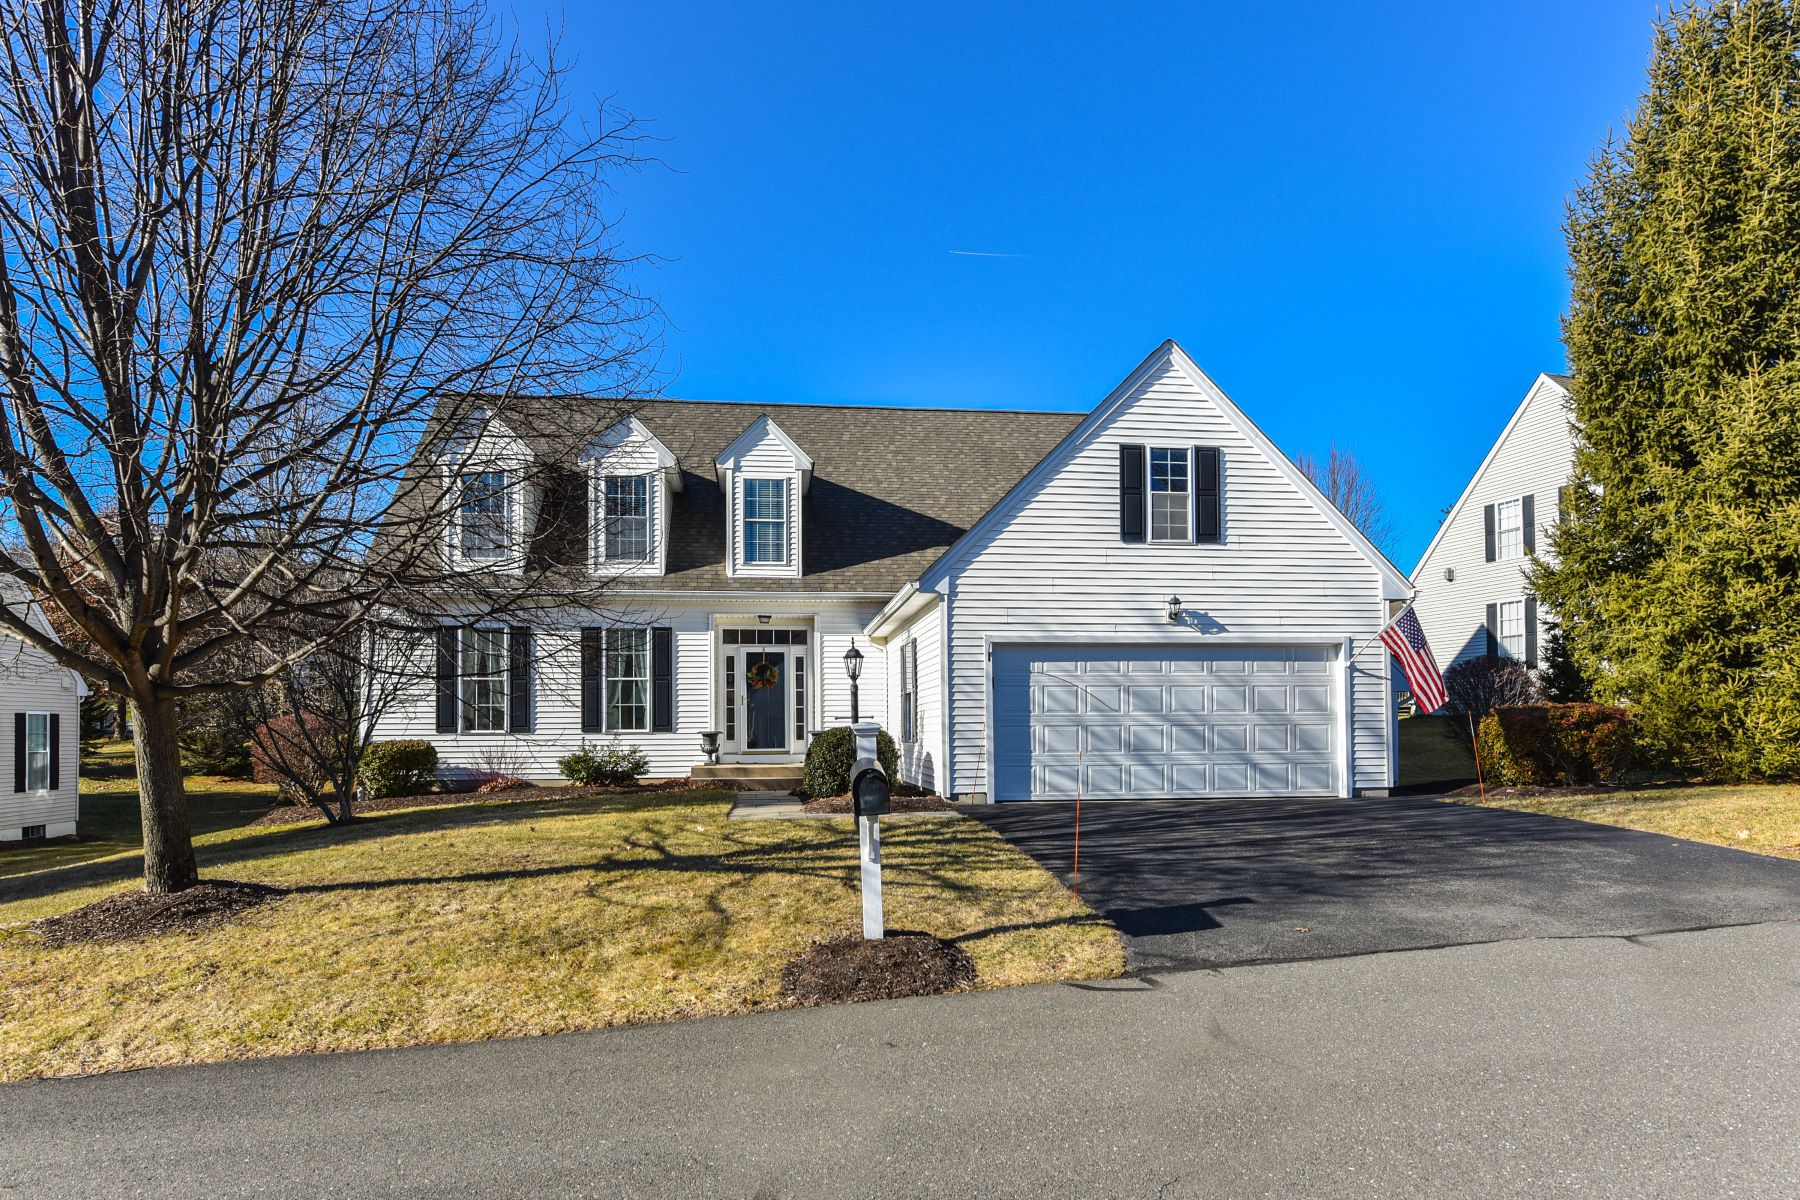 single family homes for Sale at 9 Chelsea Place 9, Avon, Connecticut 06001 United States